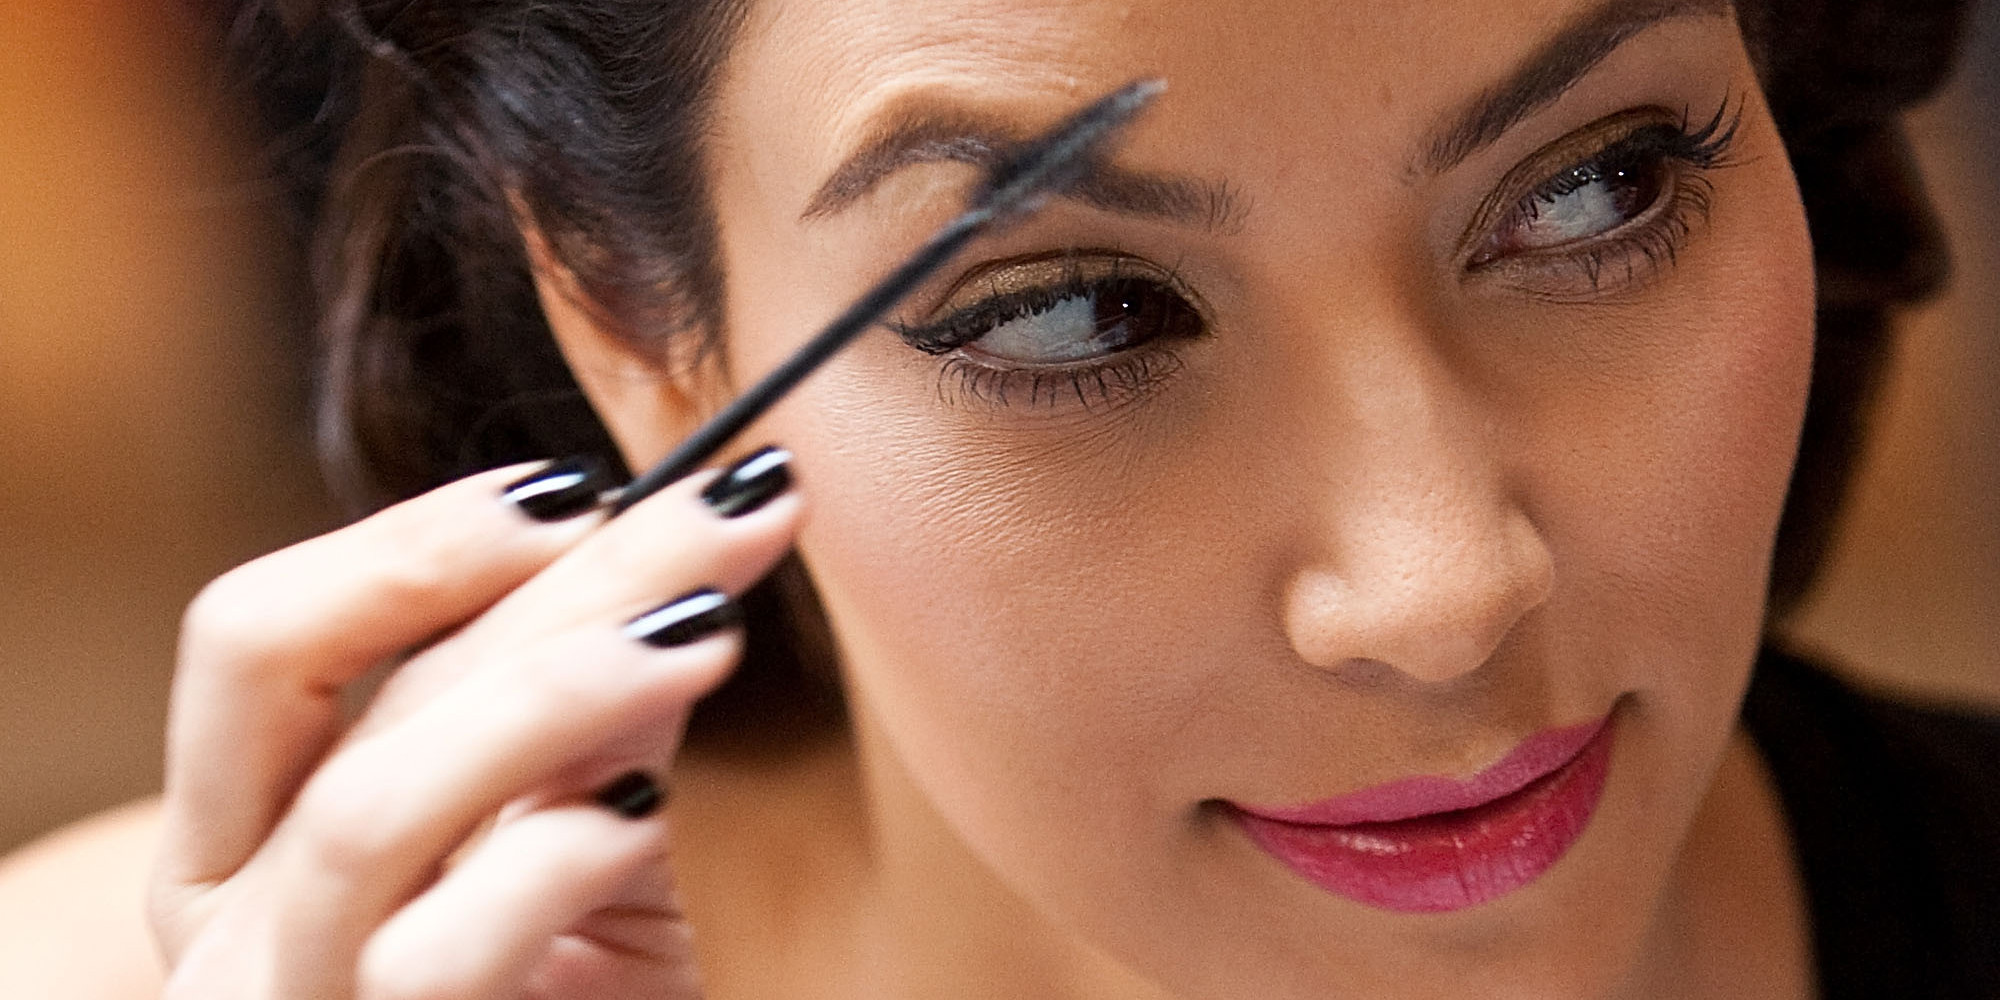 There's Mercury In Your Mascara, And The UN Is OK With That   HuffPost